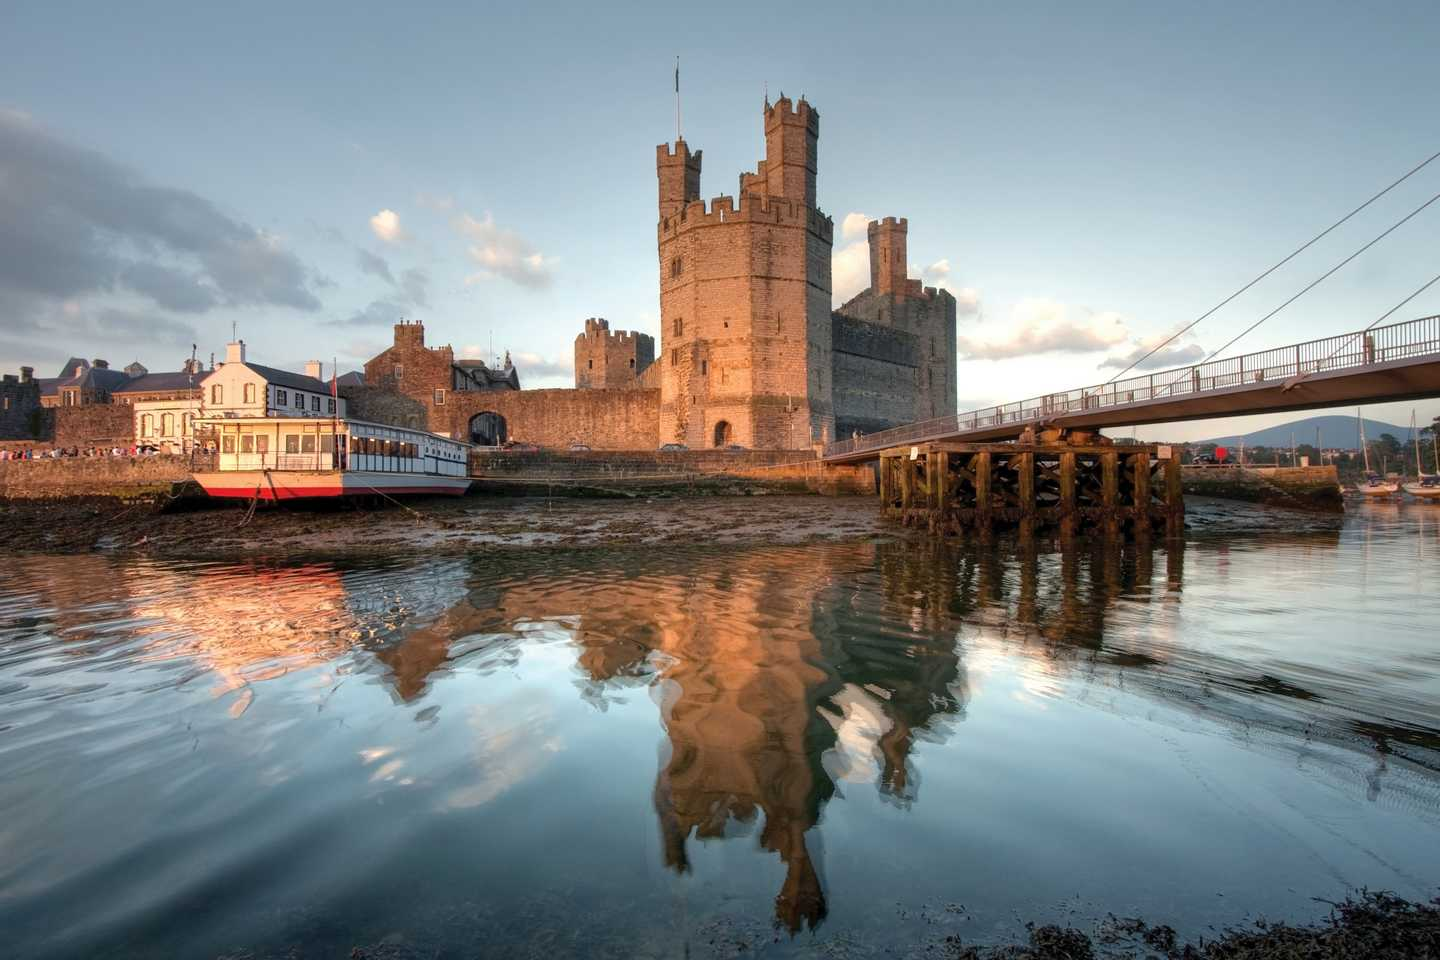 Caernarfon Castle reflecting into the River Seiont